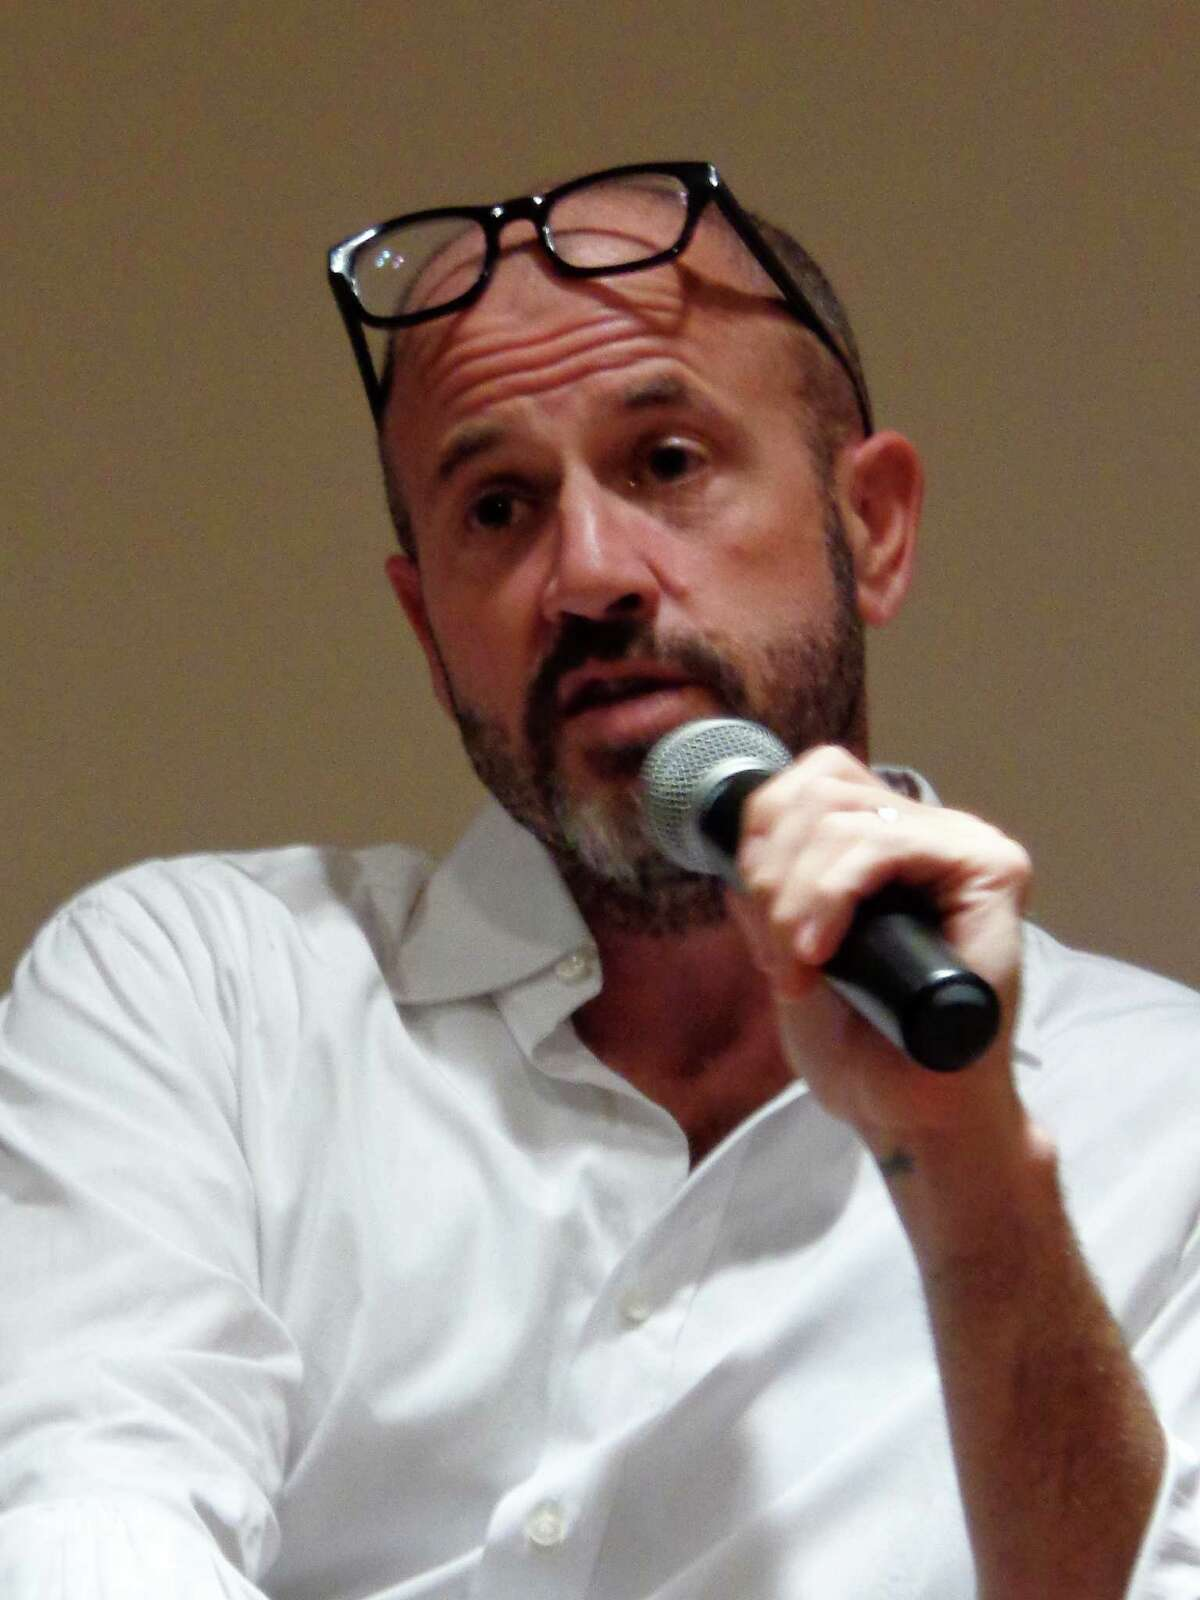 Bestselling author James Frey speaks about his new book, ìEndgame: The Calling,î to a hometown crowd at the New Canaan Library.